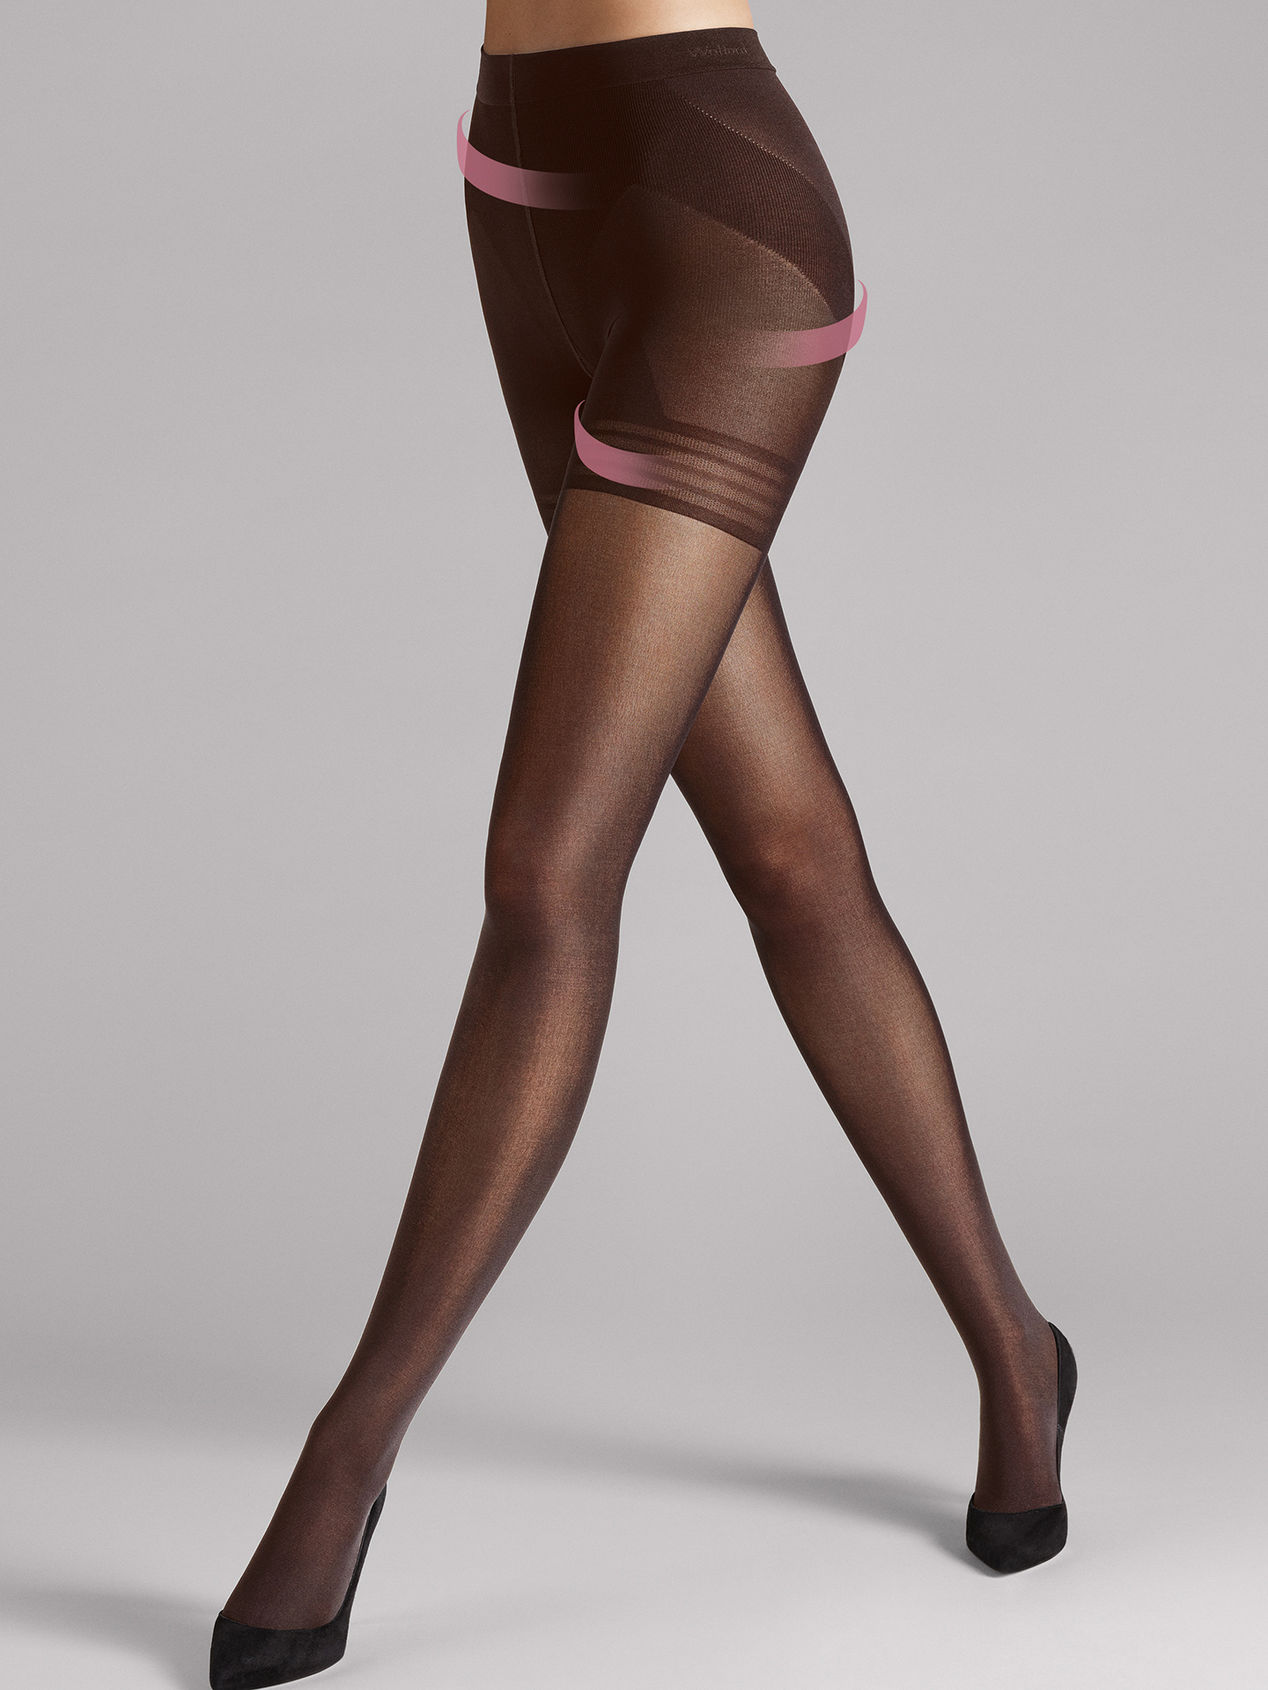 Wolford 18416 Power shape 50den